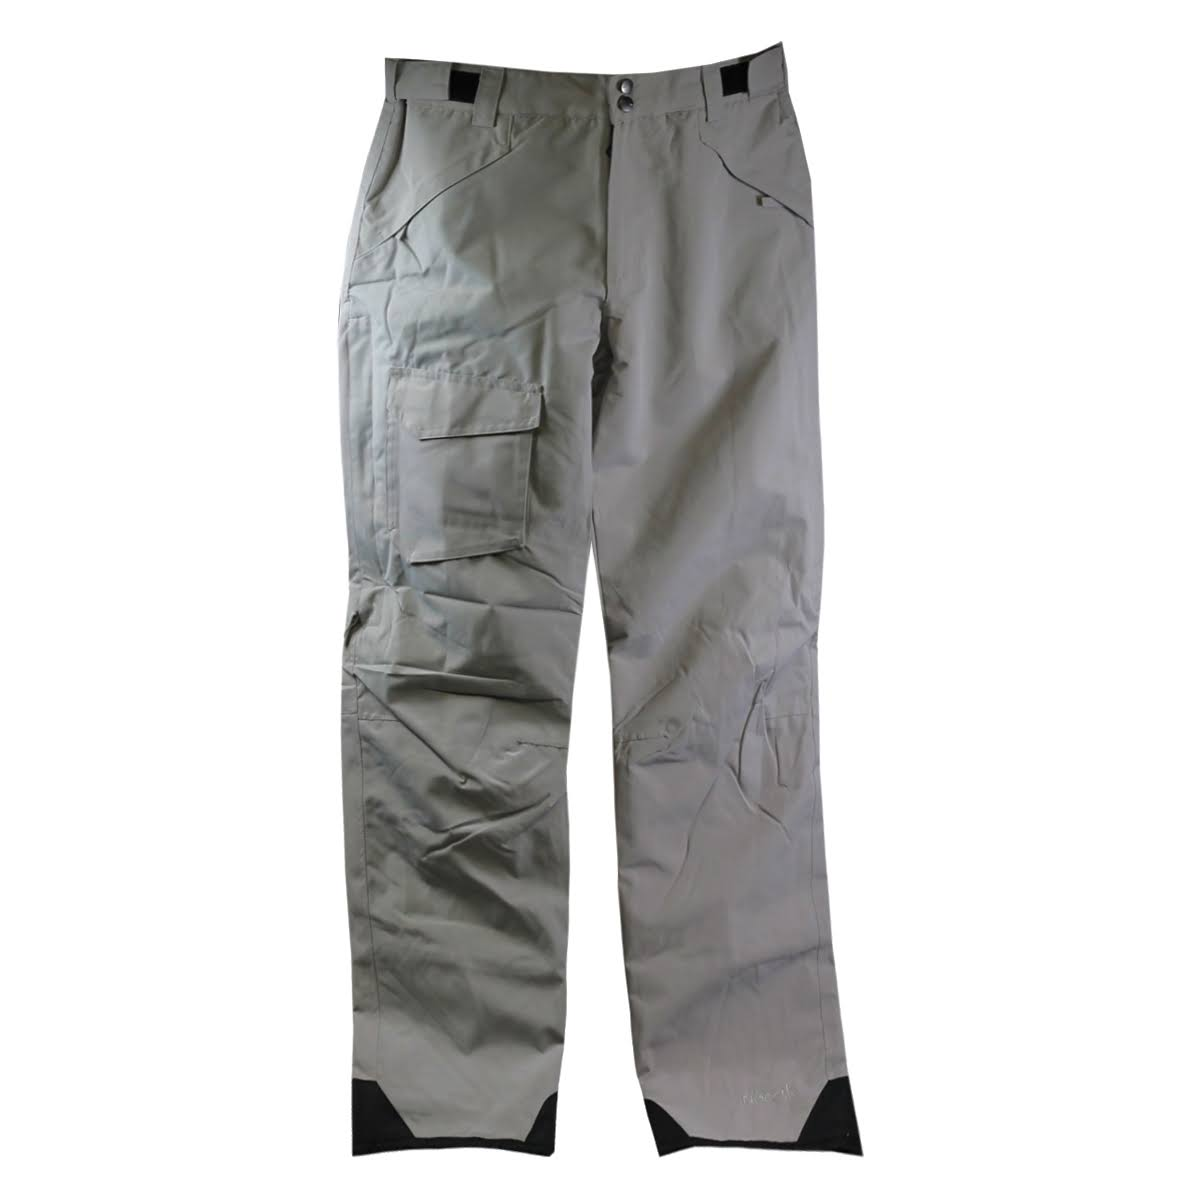 Pulse Men's Rider Board Pants - Light Gray Medium